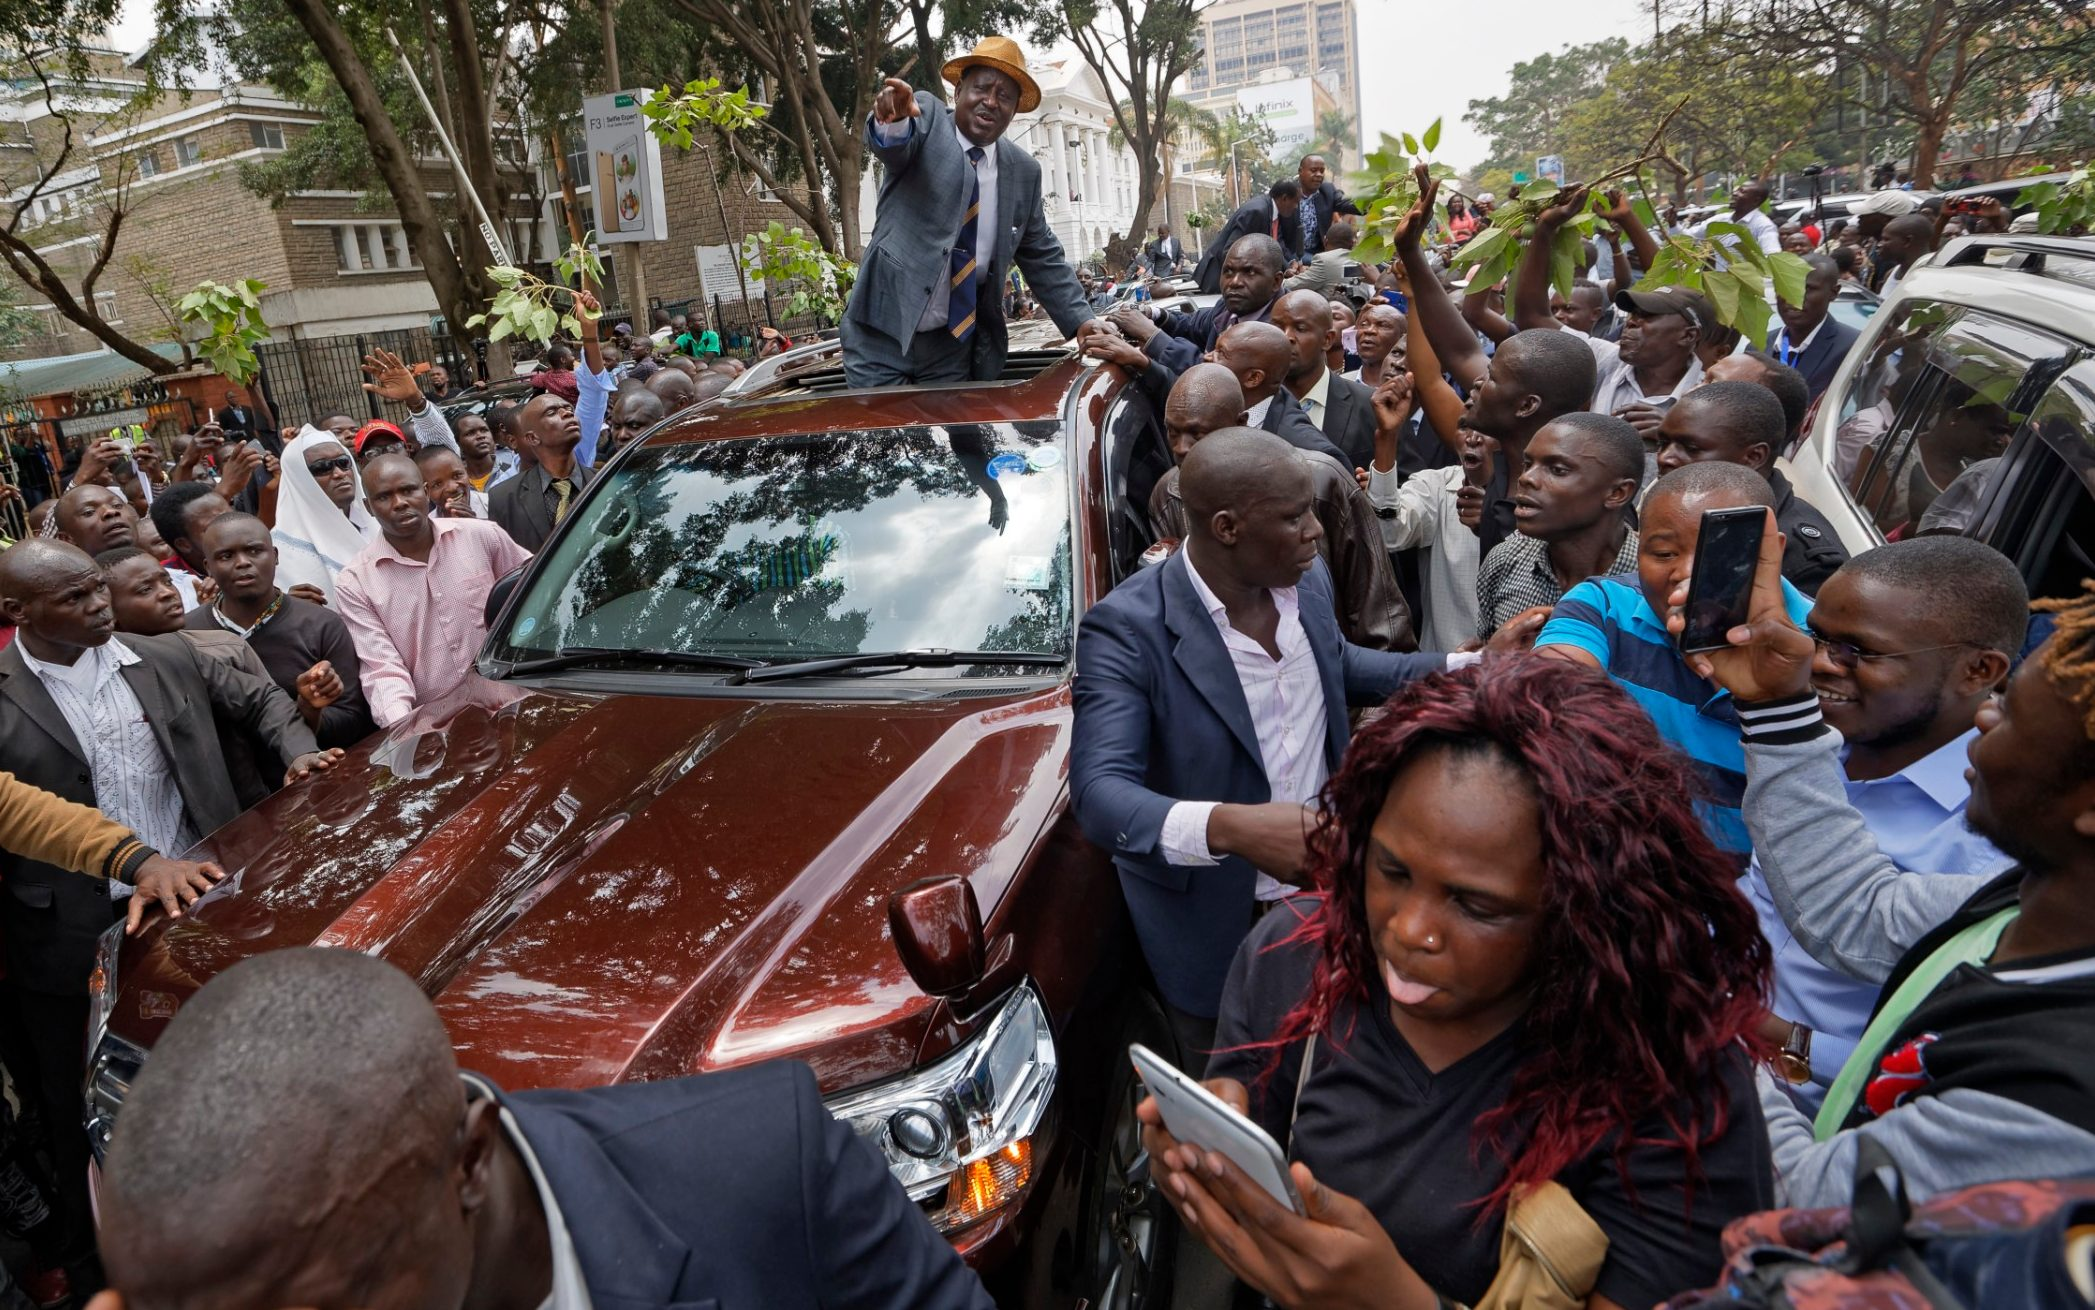 Opposition leader Raila Odinga smiles and waves to a crowd of his supporters as he leaves the Supreme Court in downtown Nairobi